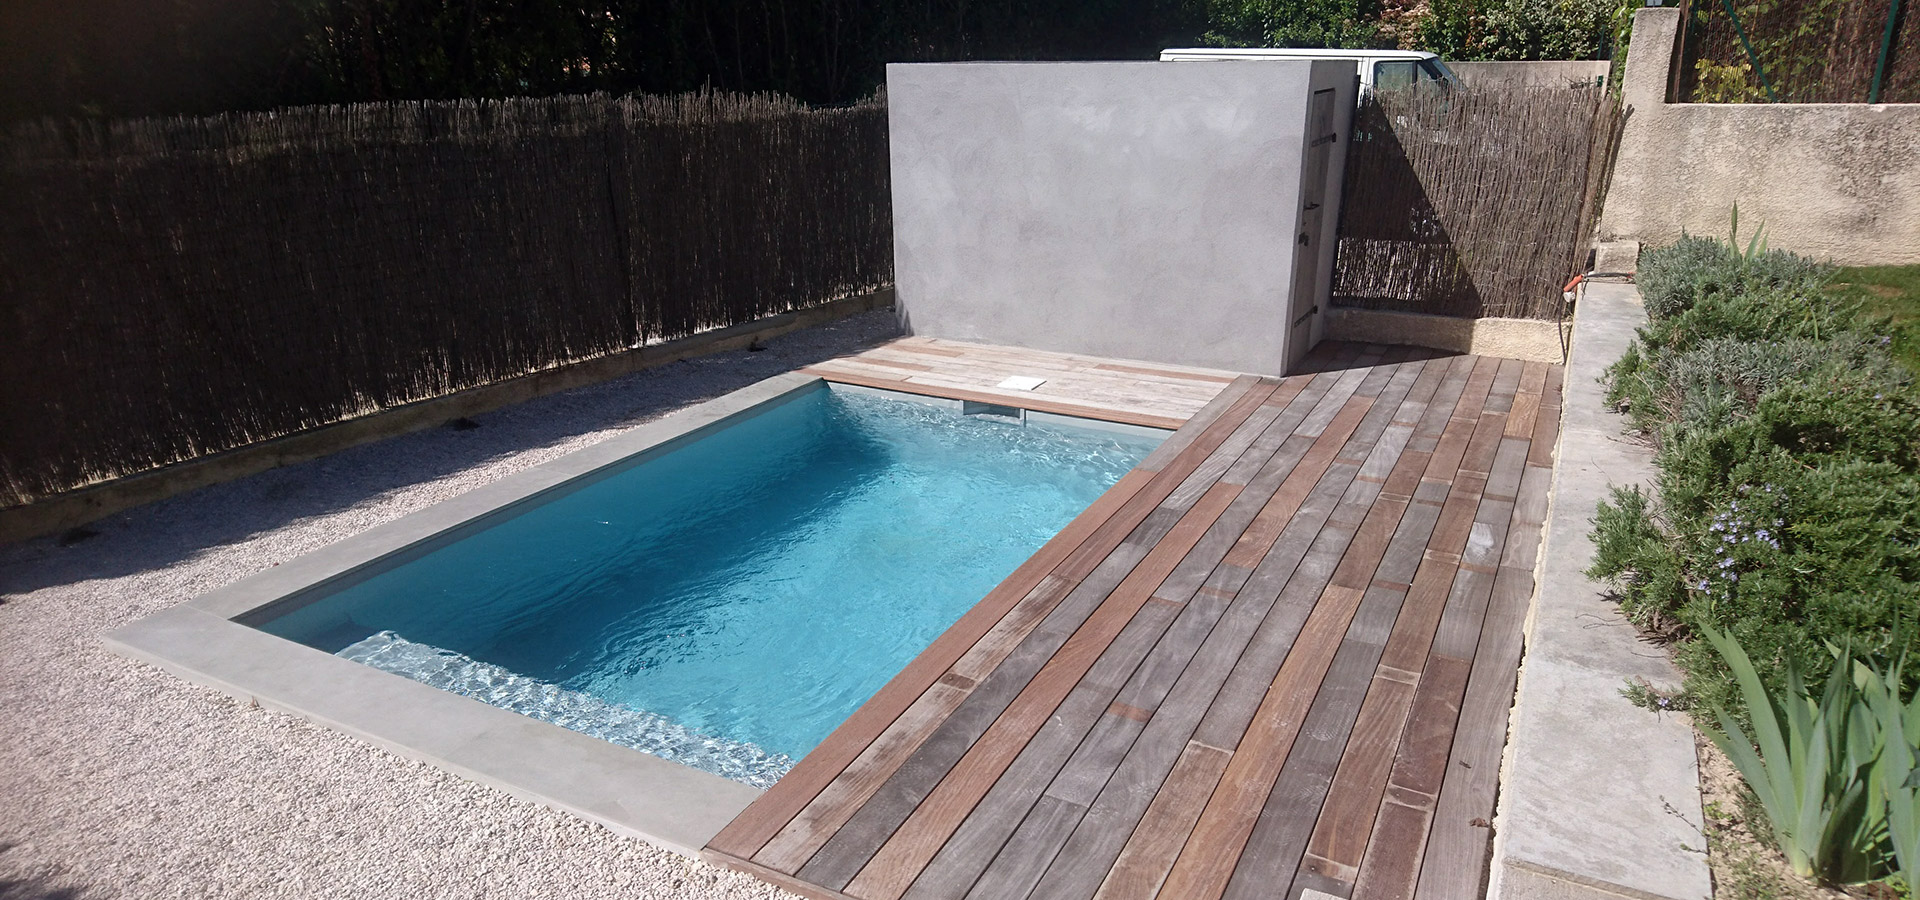 Mobilier Exterieur Piscine Amenagement Piscine Exterieur Creation Amenagement